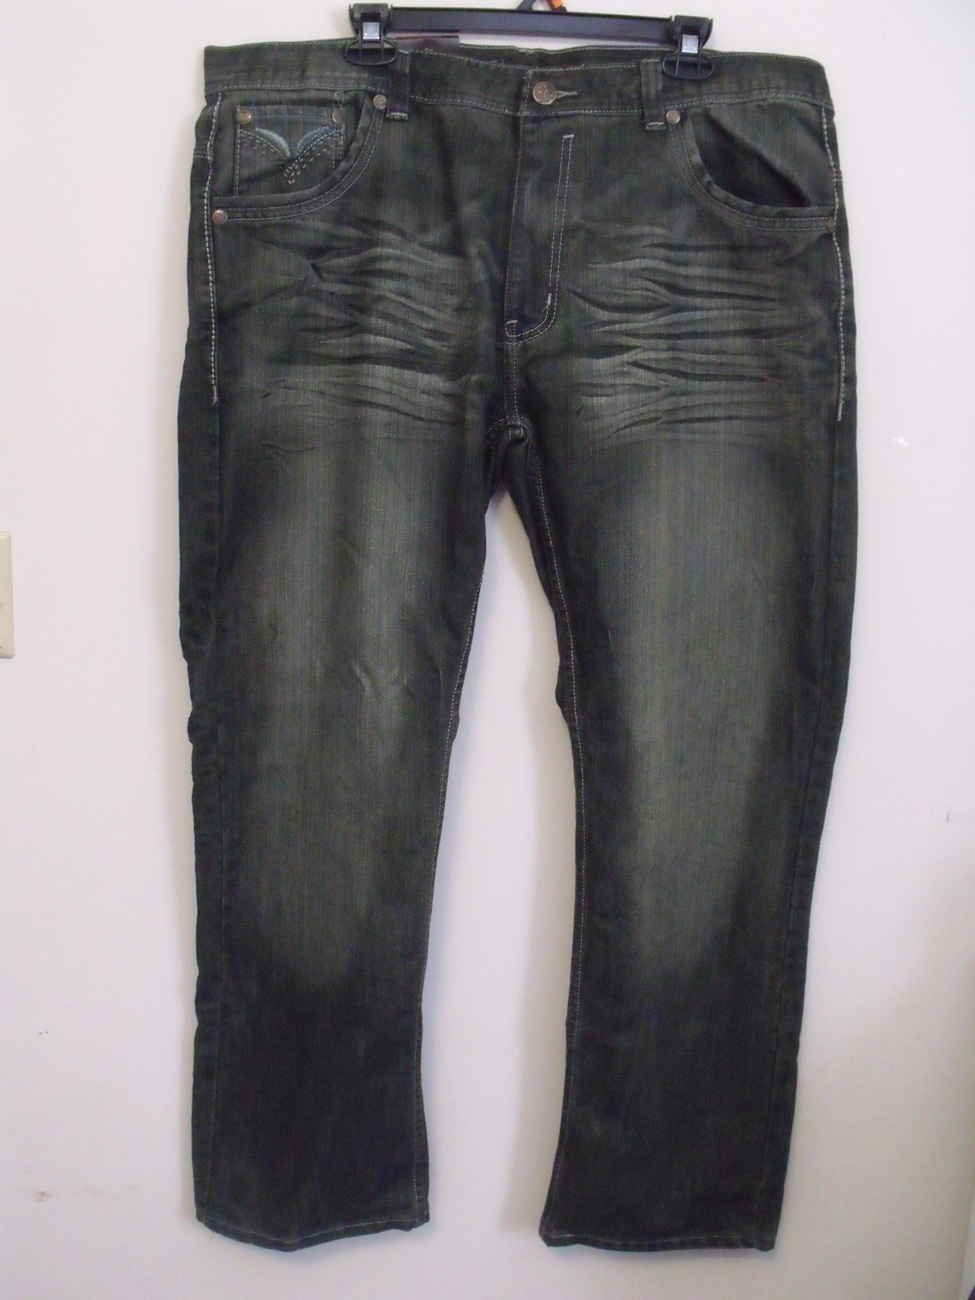 mens jinzu nwt dirty wash jeans size 42 x 32 jeans. Black Bedroom Furniture Sets. Home Design Ideas